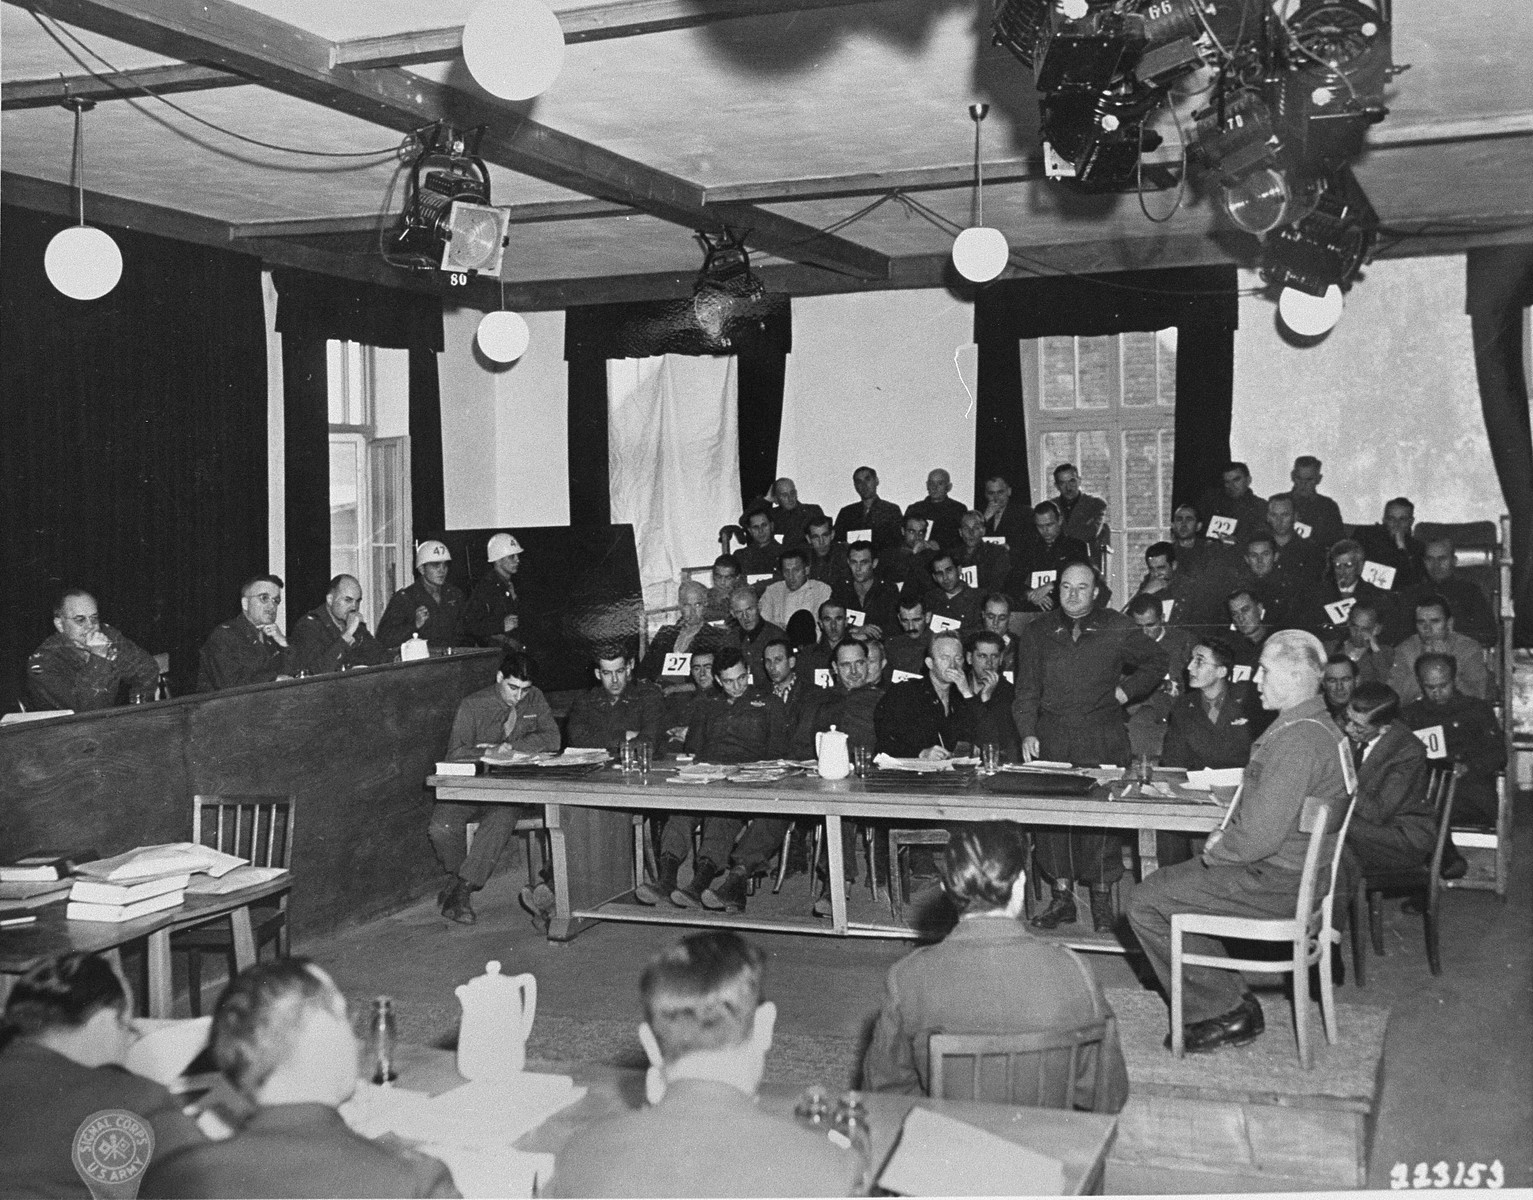 Defendant Otto Schultz replies to a question put to him by defense attorney Capt. John May (standing), at the trial of former camp personnel and prisoners from Dachau.